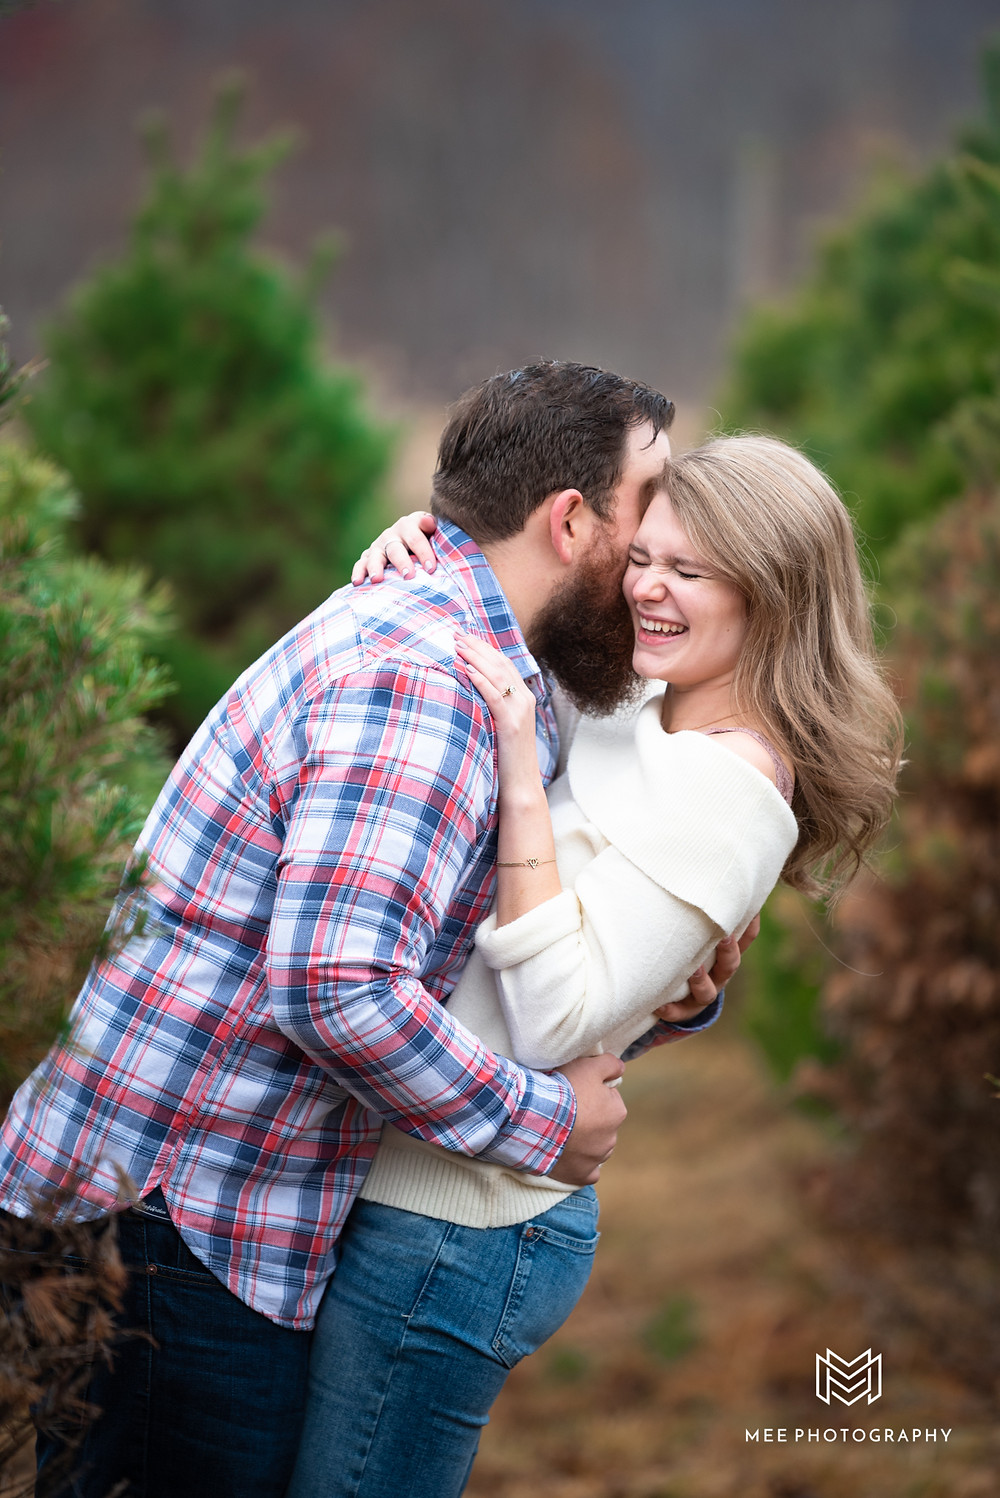 Couples Christmas card photoshoot in Morgantown, WV